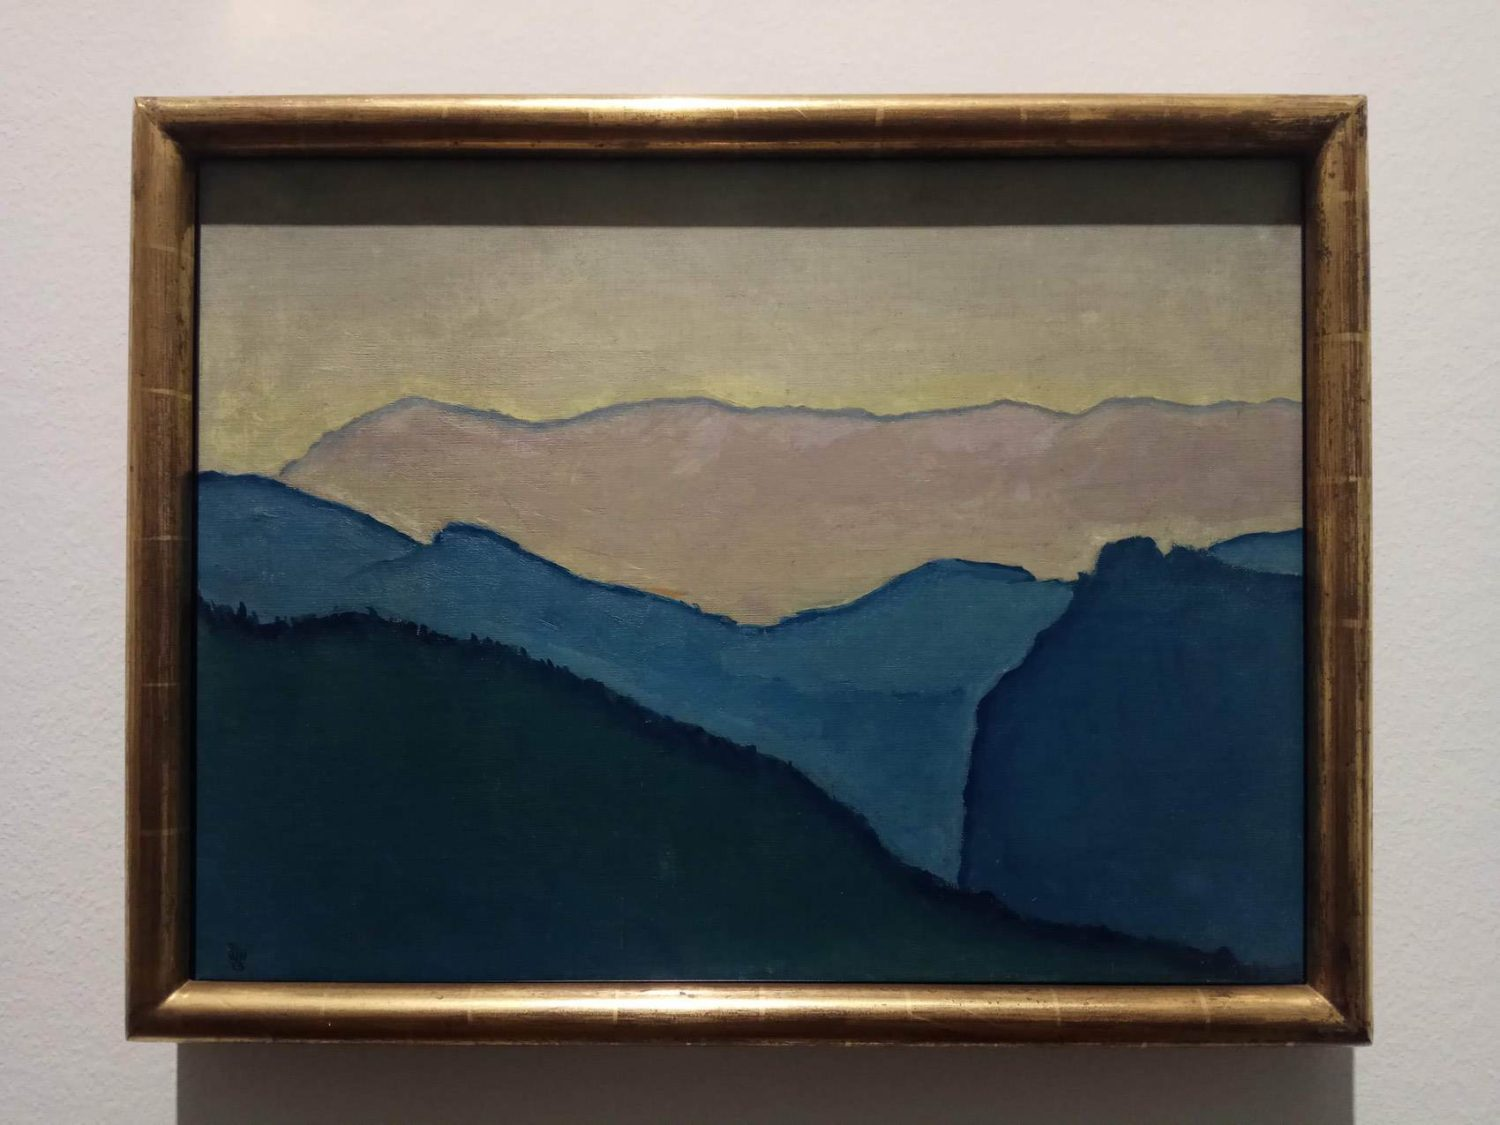 Koloman moser|Mountain ranges